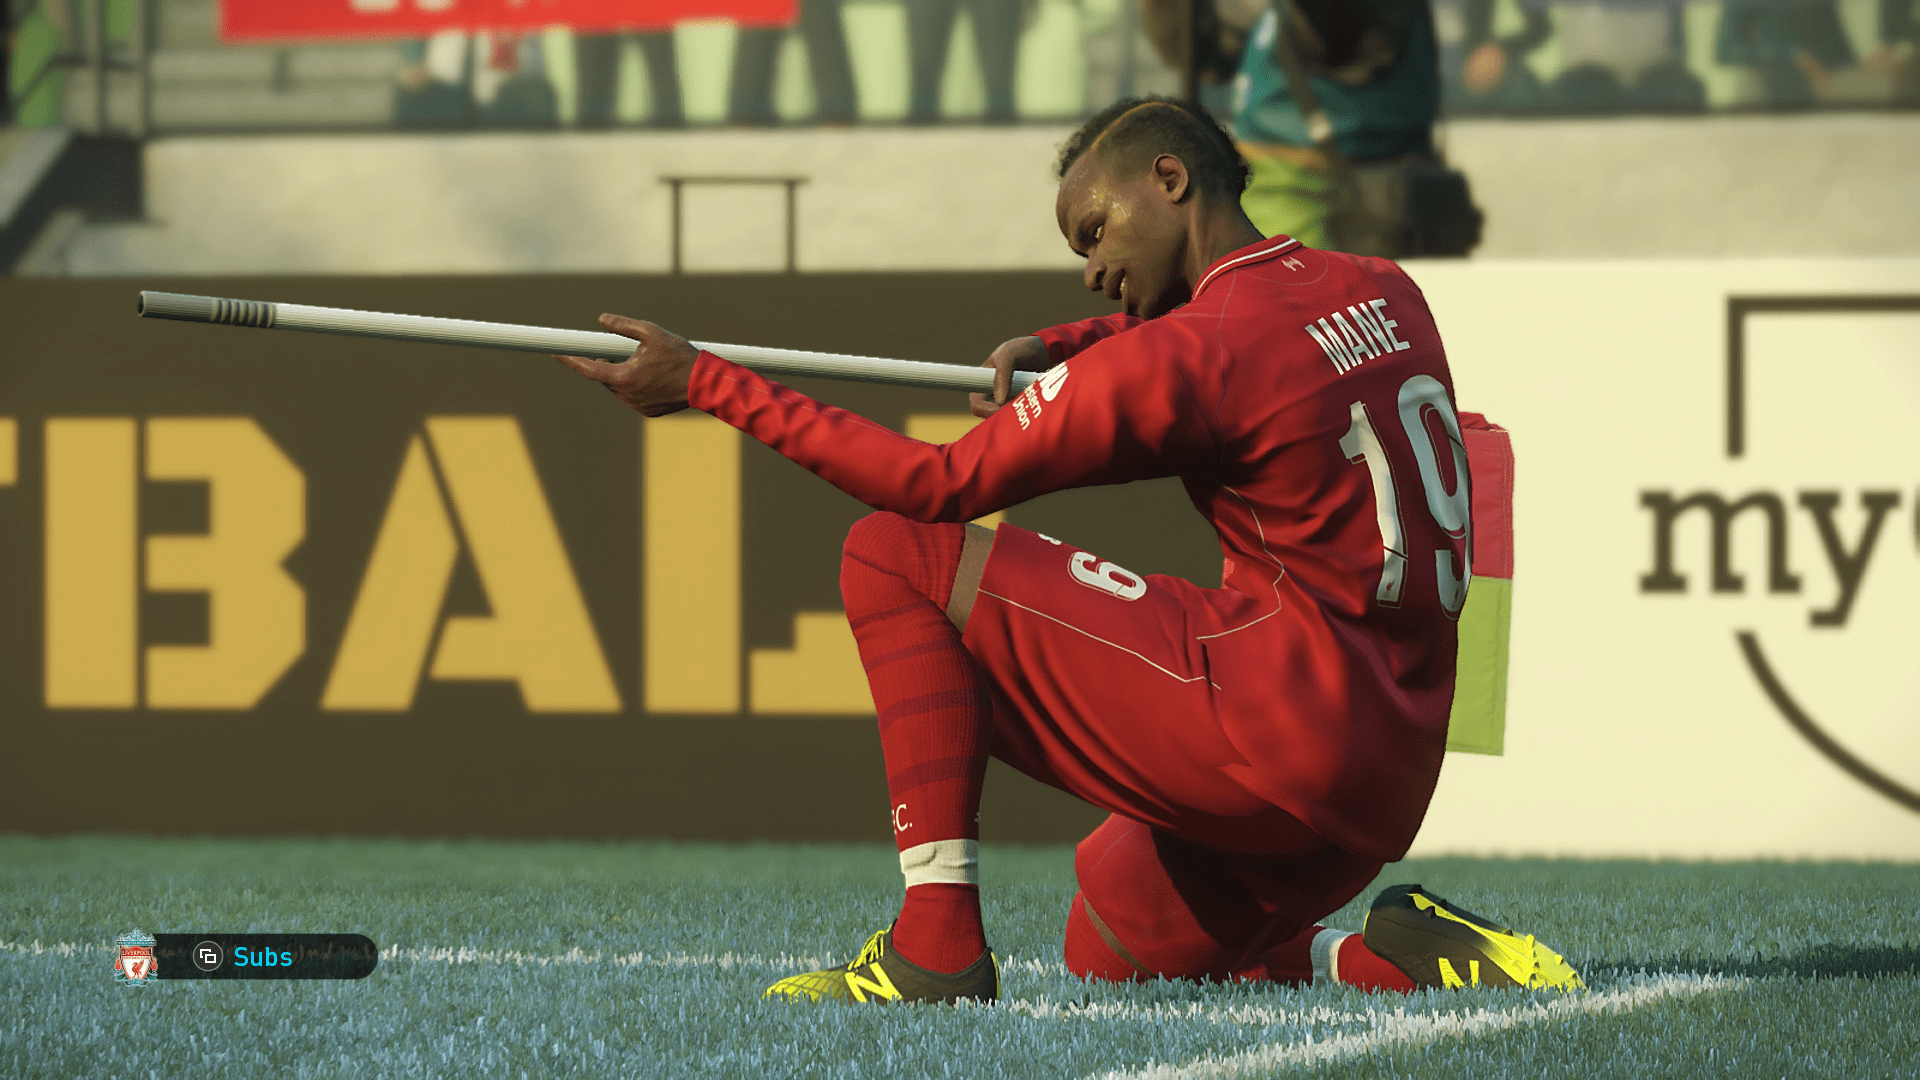 Review - Pro Evolution Soccer 2019 (Xbox One)